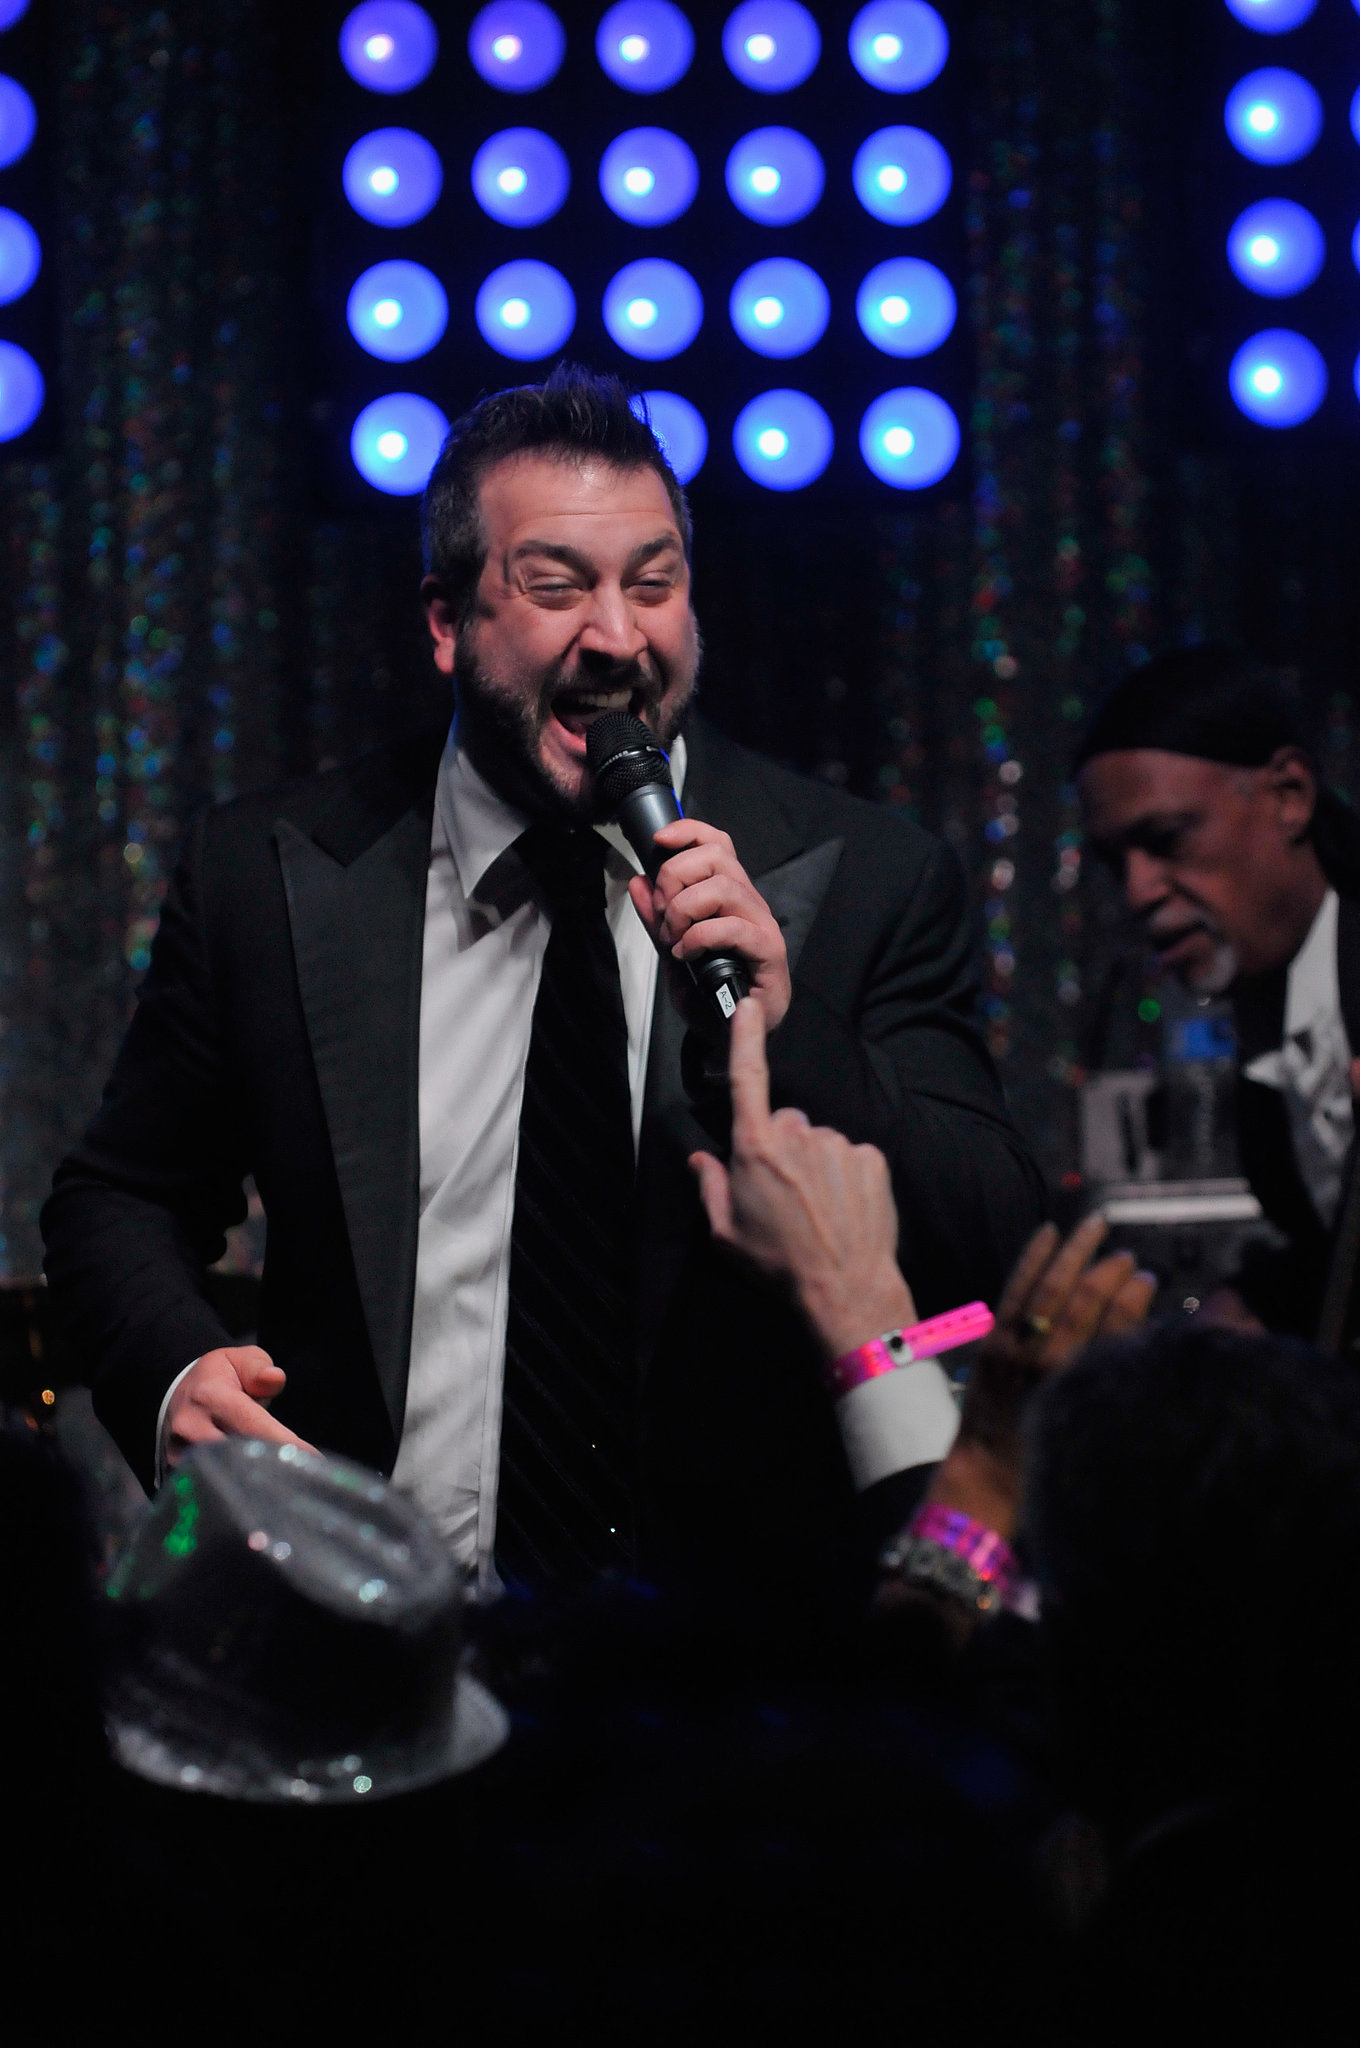 Joey Fatone was one of the stars who performed at the Barnstable Brown Gala on Friday.